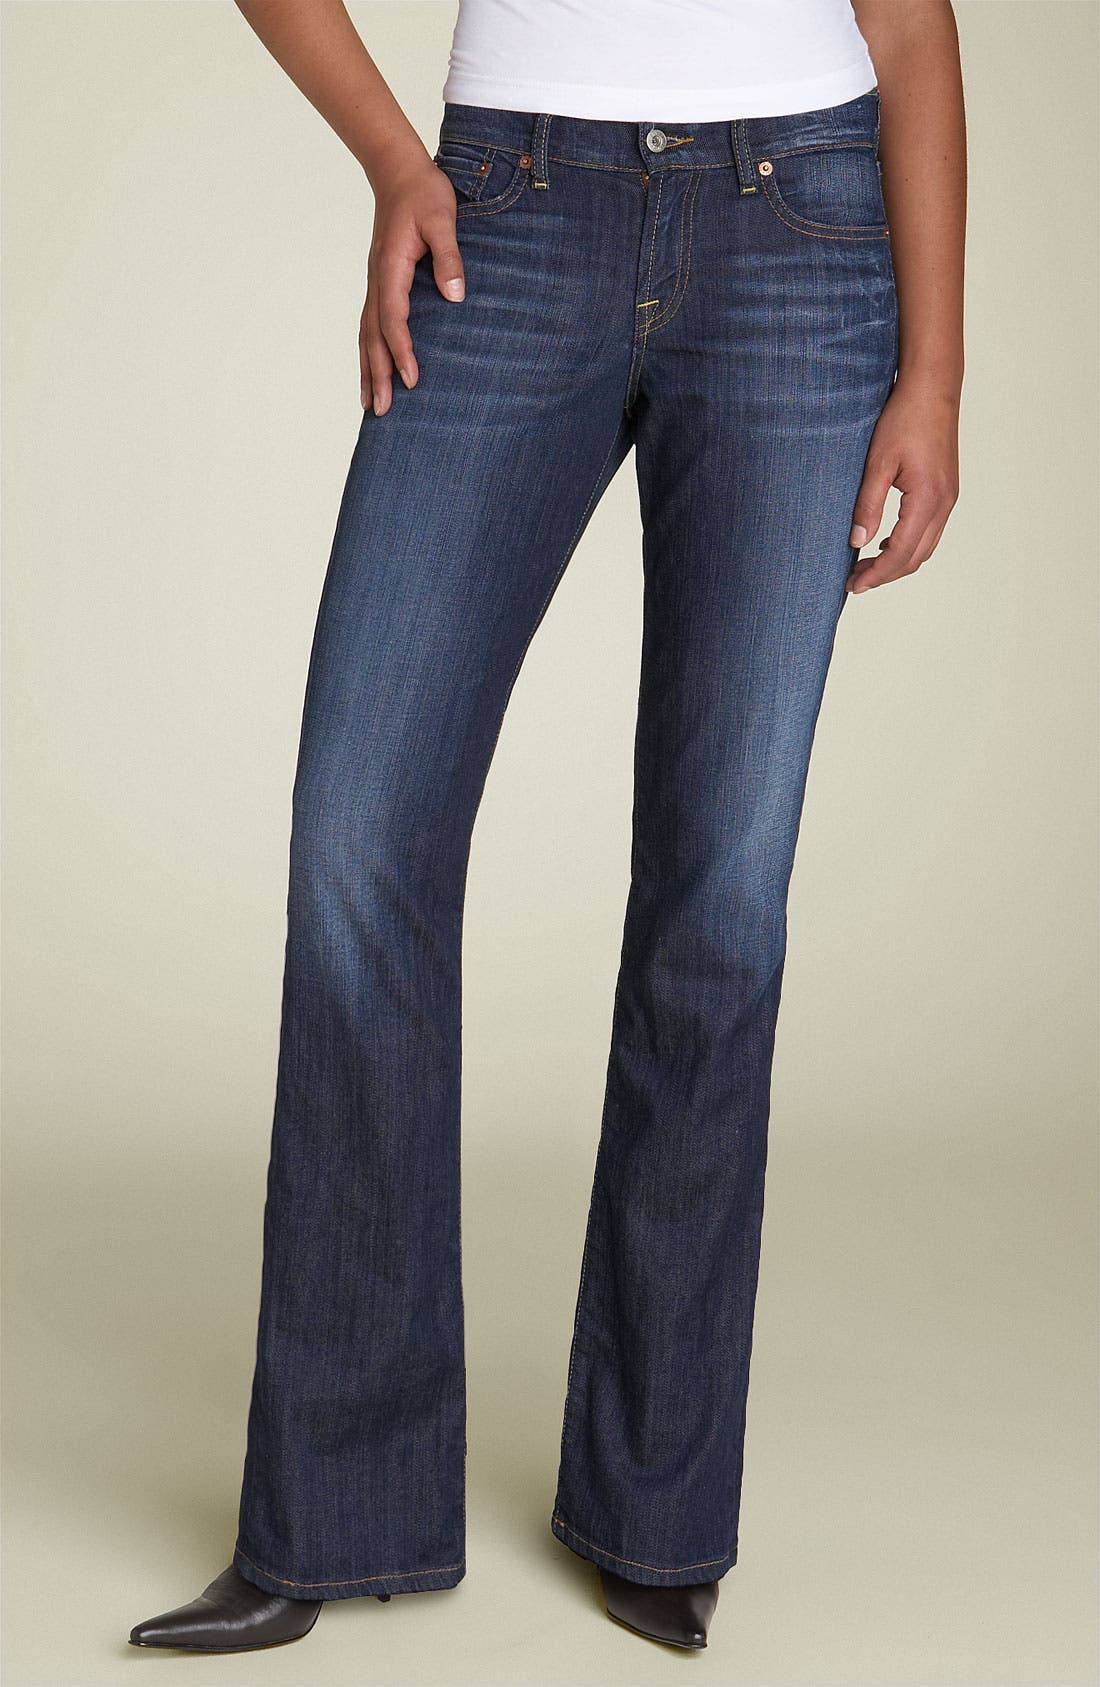 LUCKY BRAND,                             'Delaware Classic Rider' Stretch Jeans,                             Alternate thumbnail 2, color,                             460